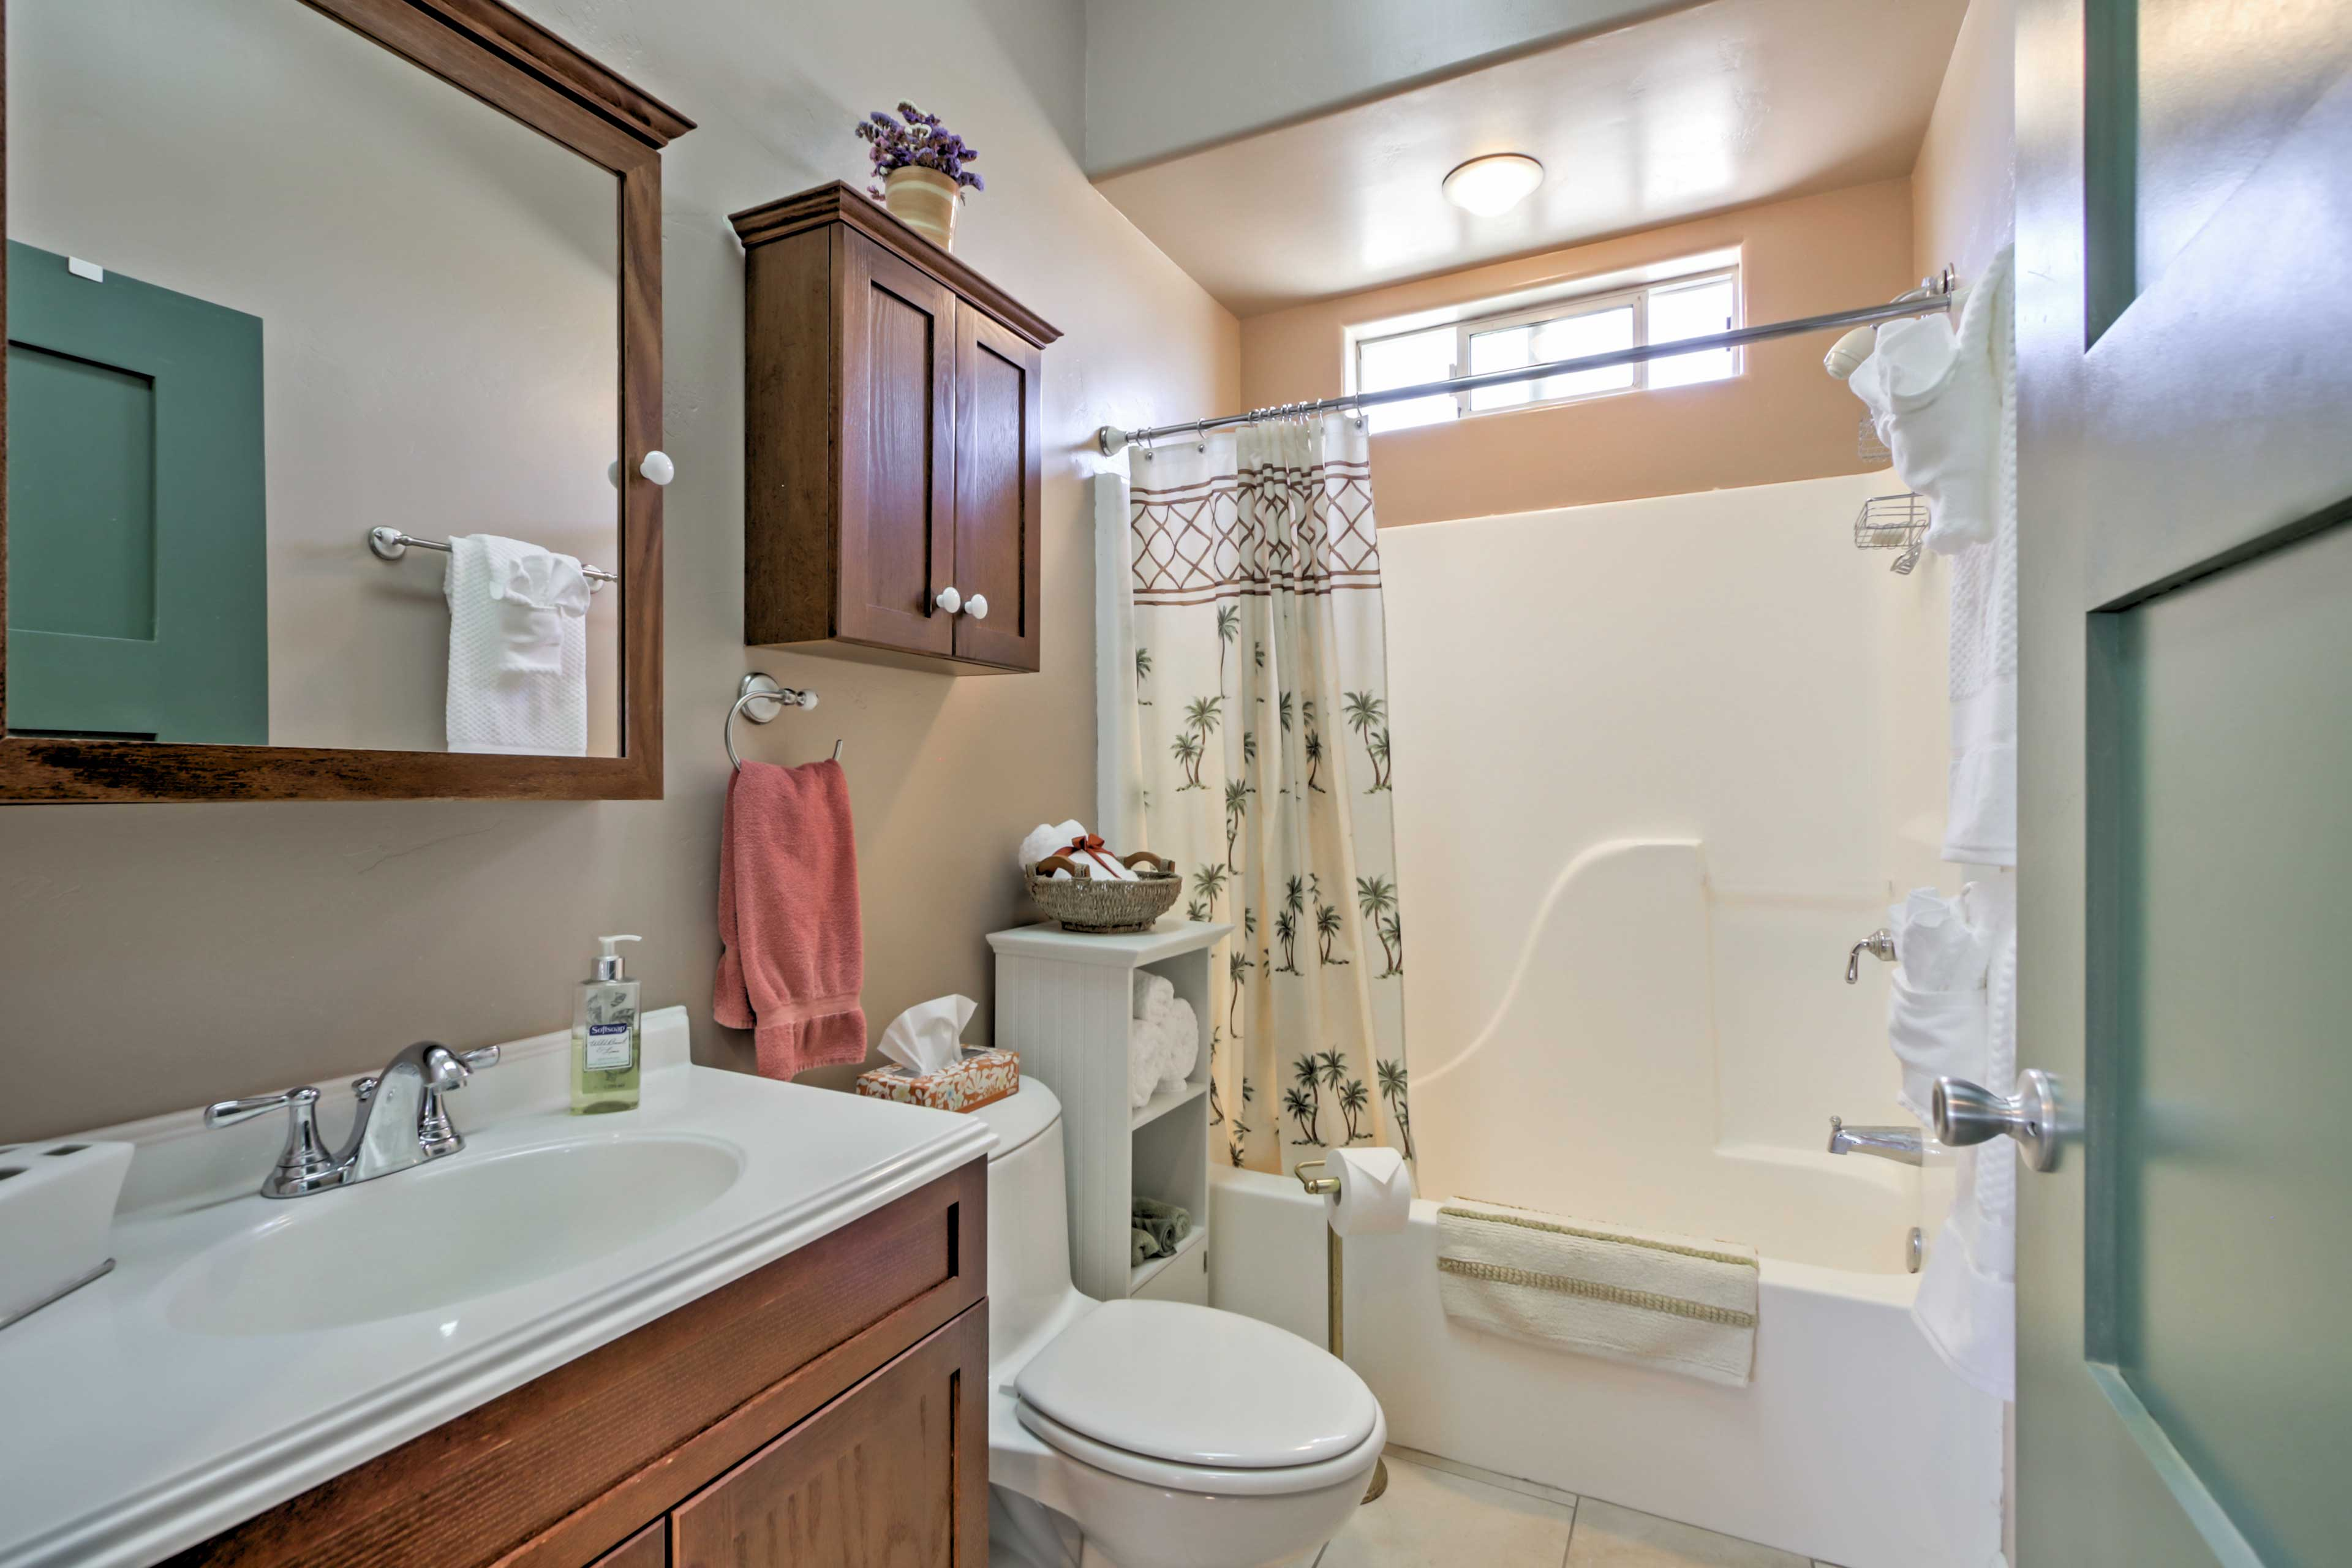 The property contains 1.5 bathrooms total.